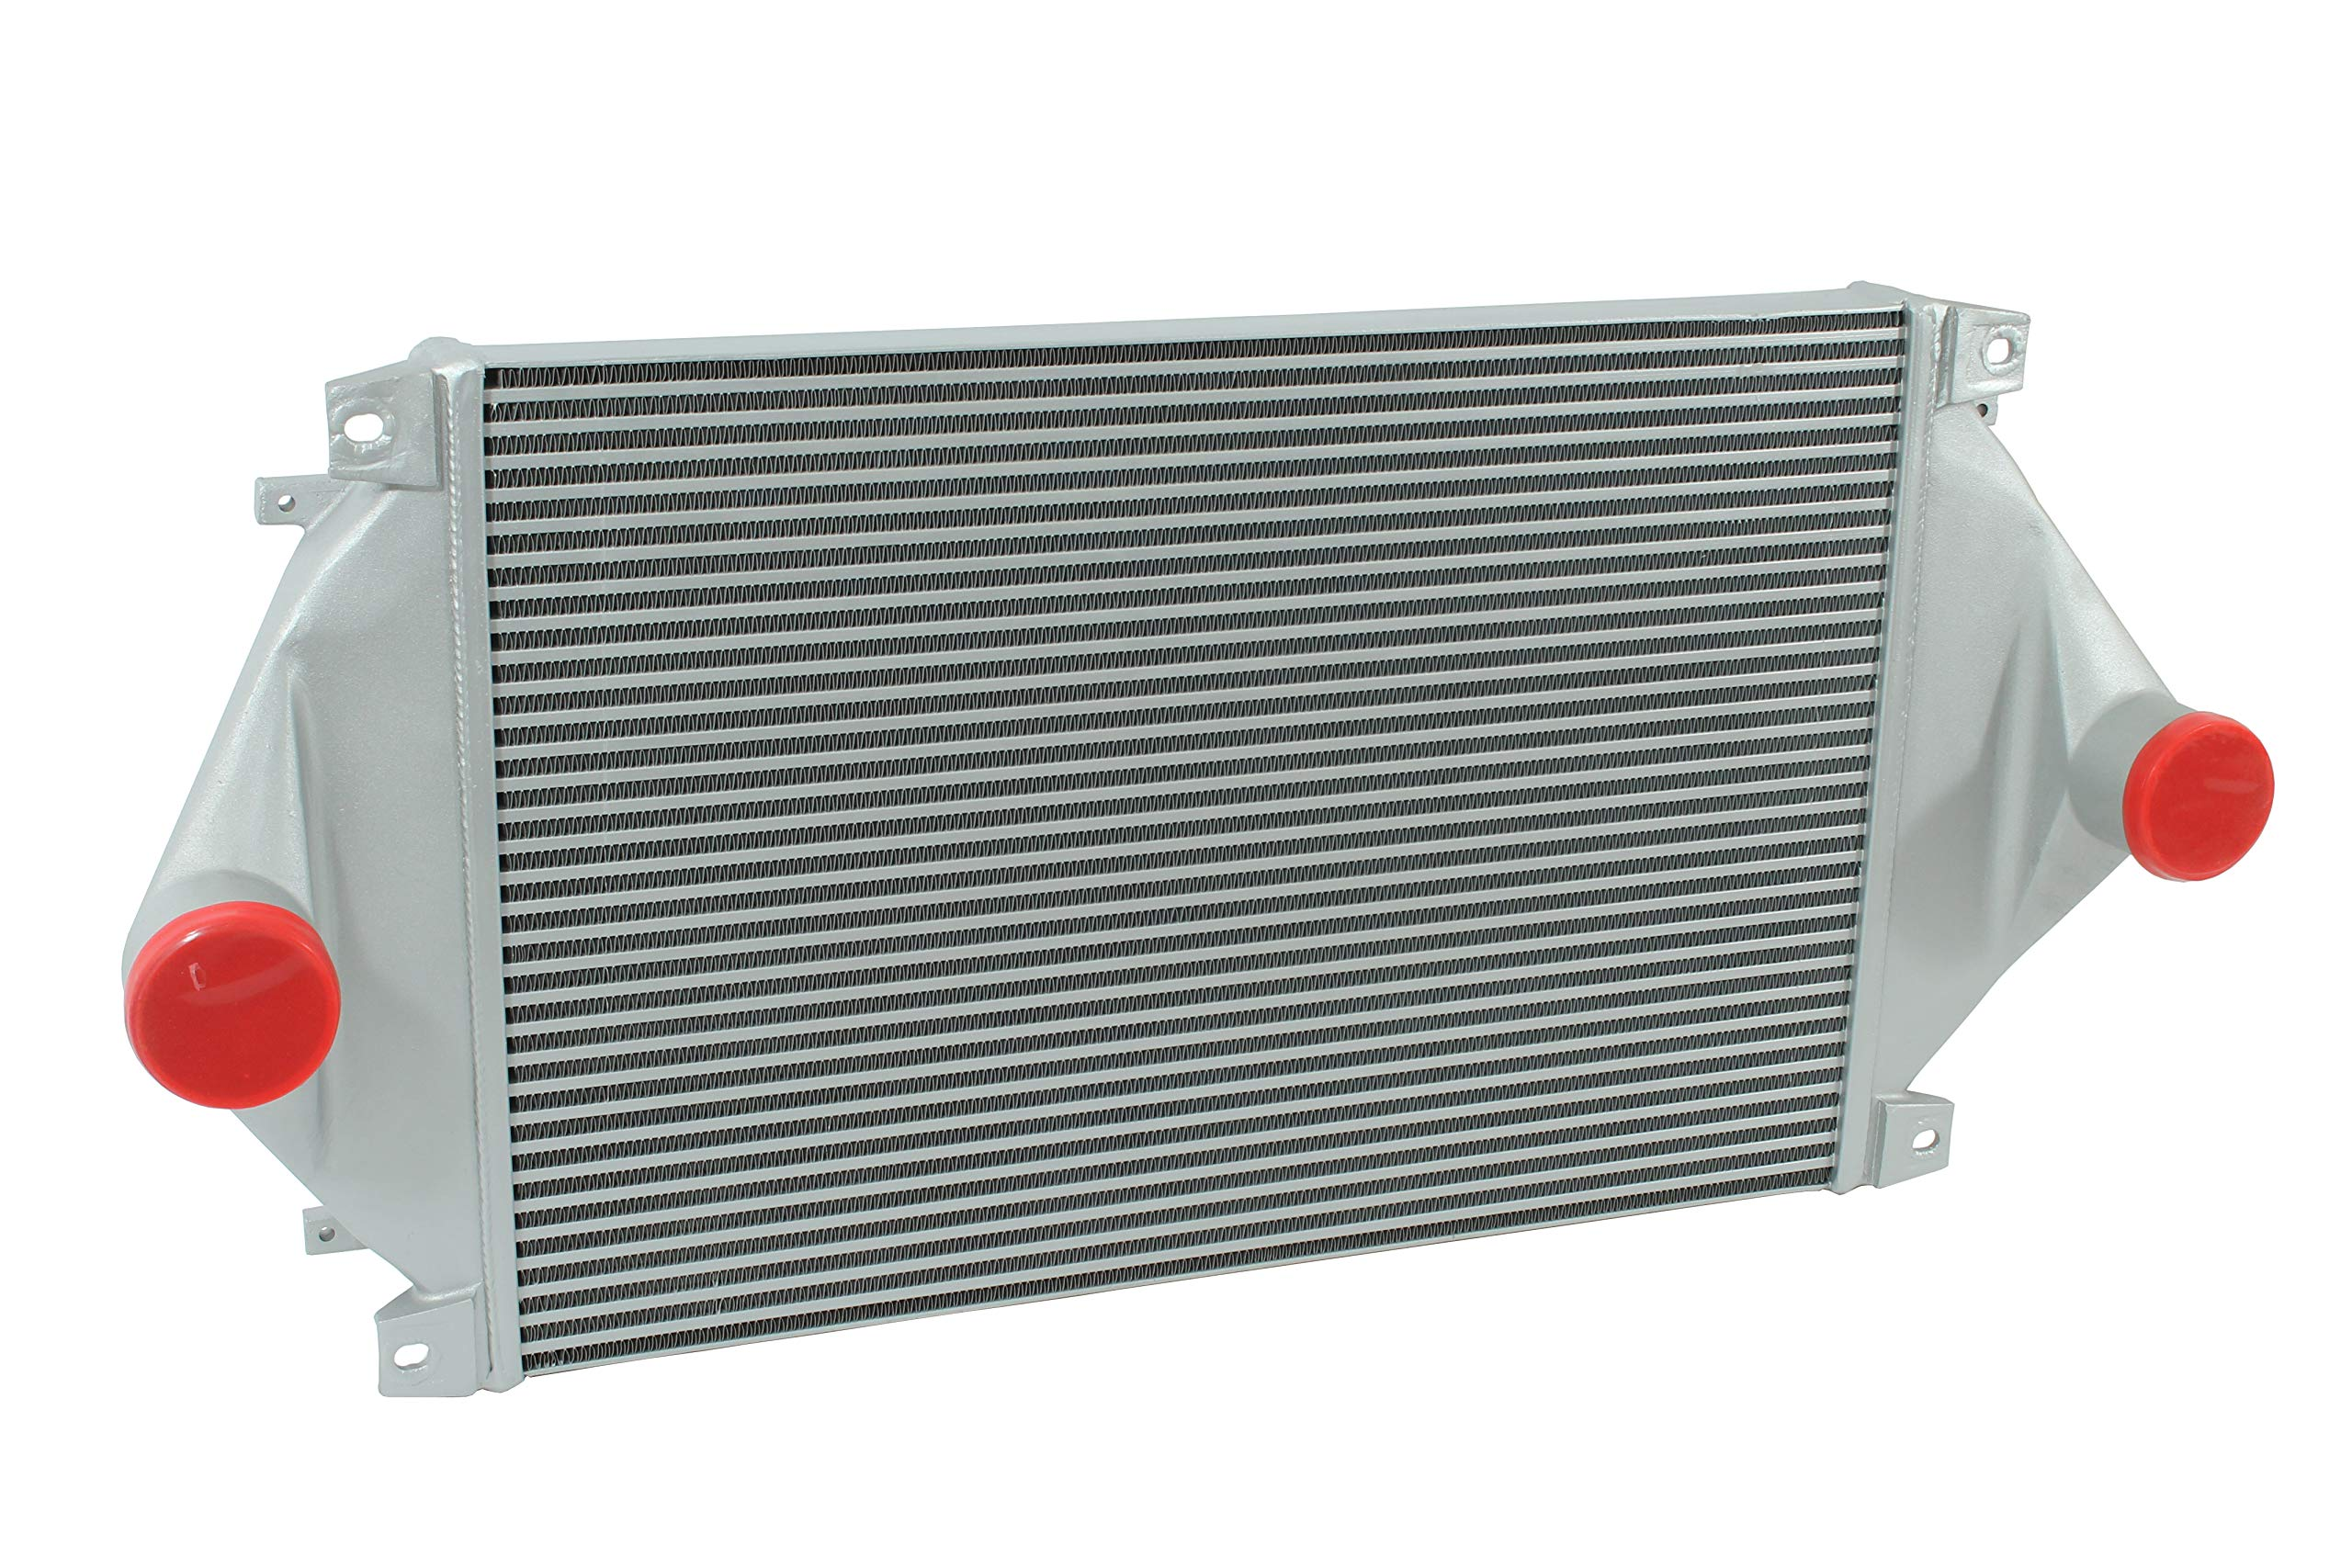 Volvo WG-64, Spartan Bus, Oshkosh Motorhome Heavy Duty Truck Charge Air Cooler by Eagle Products